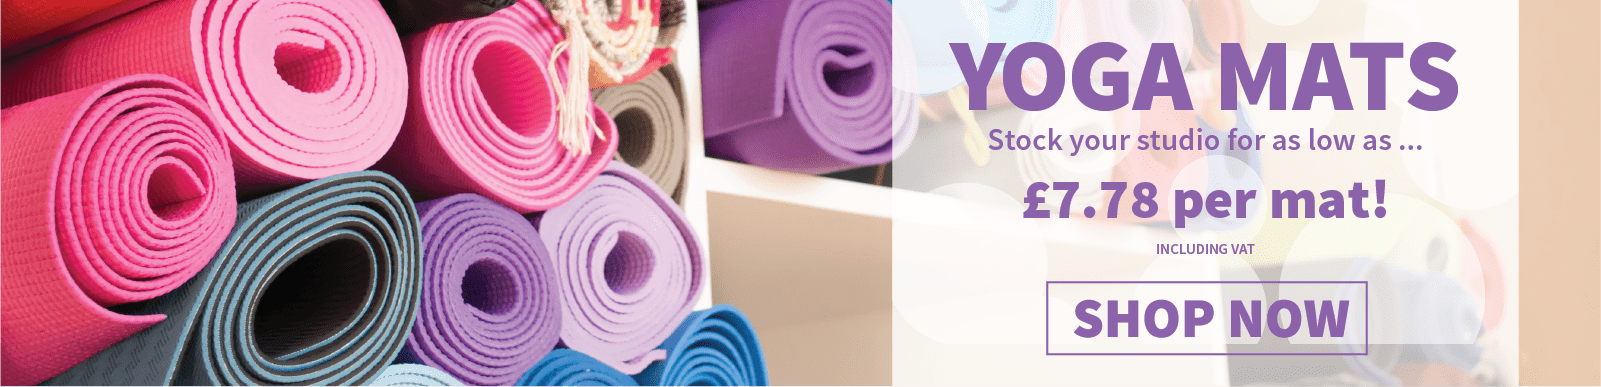 comfortable win max folding mats on quality yoga best mat tpe rubber slip sale natural non